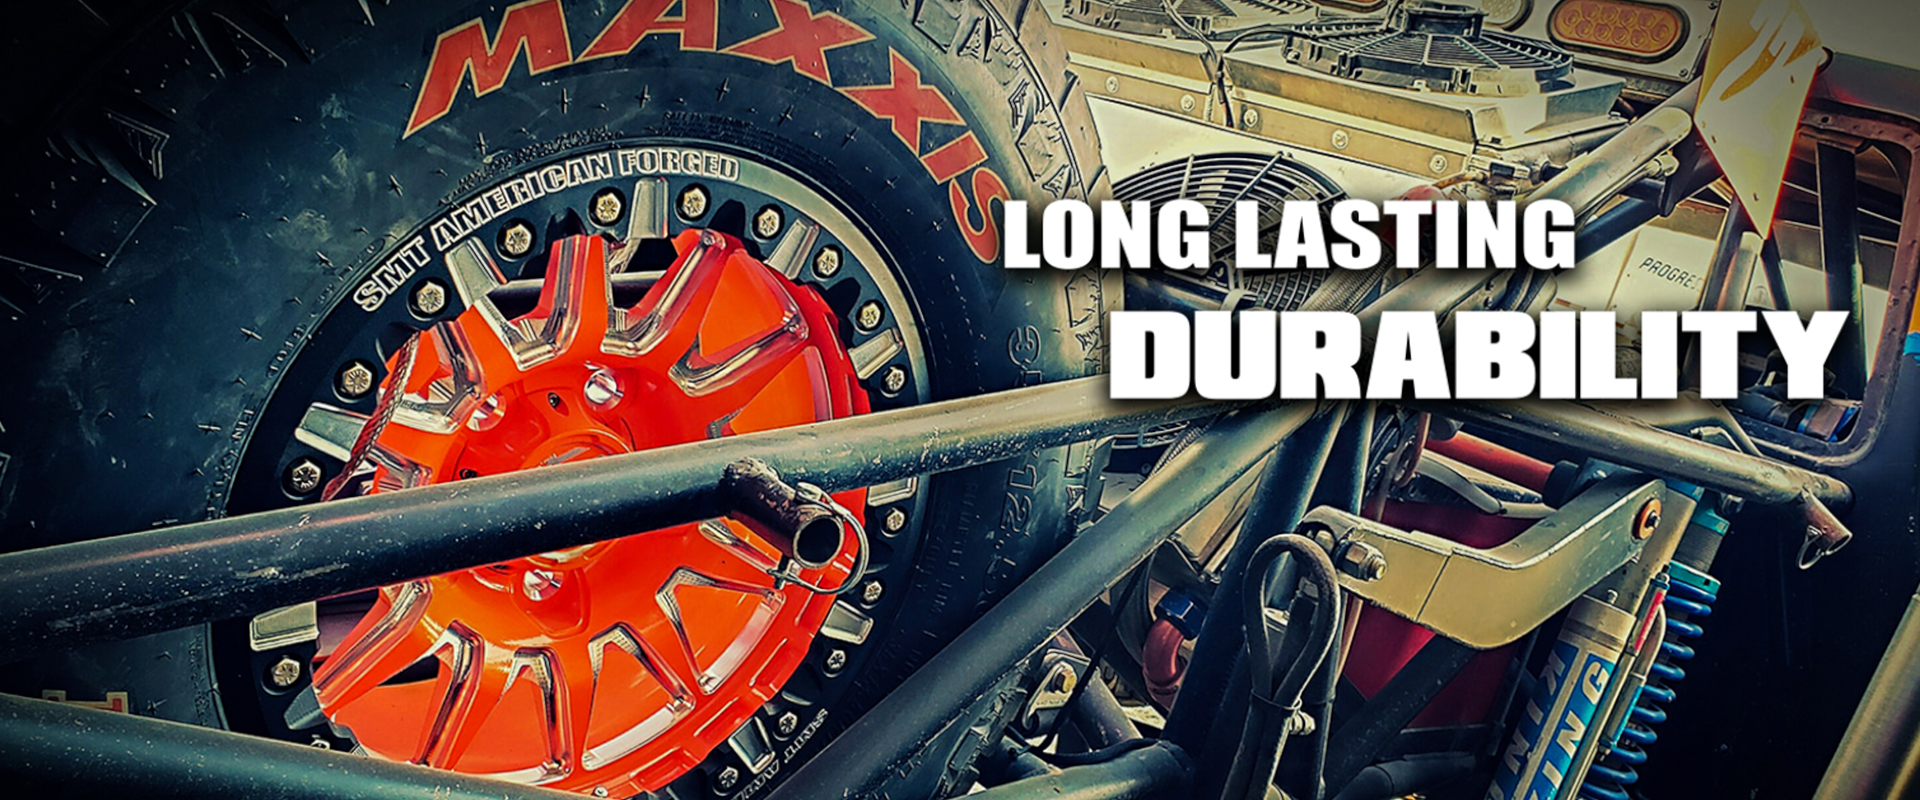 SMT-American-Forged-Off-Road-Truck-RS5-Wheel-website-banner-long-lasting-durability